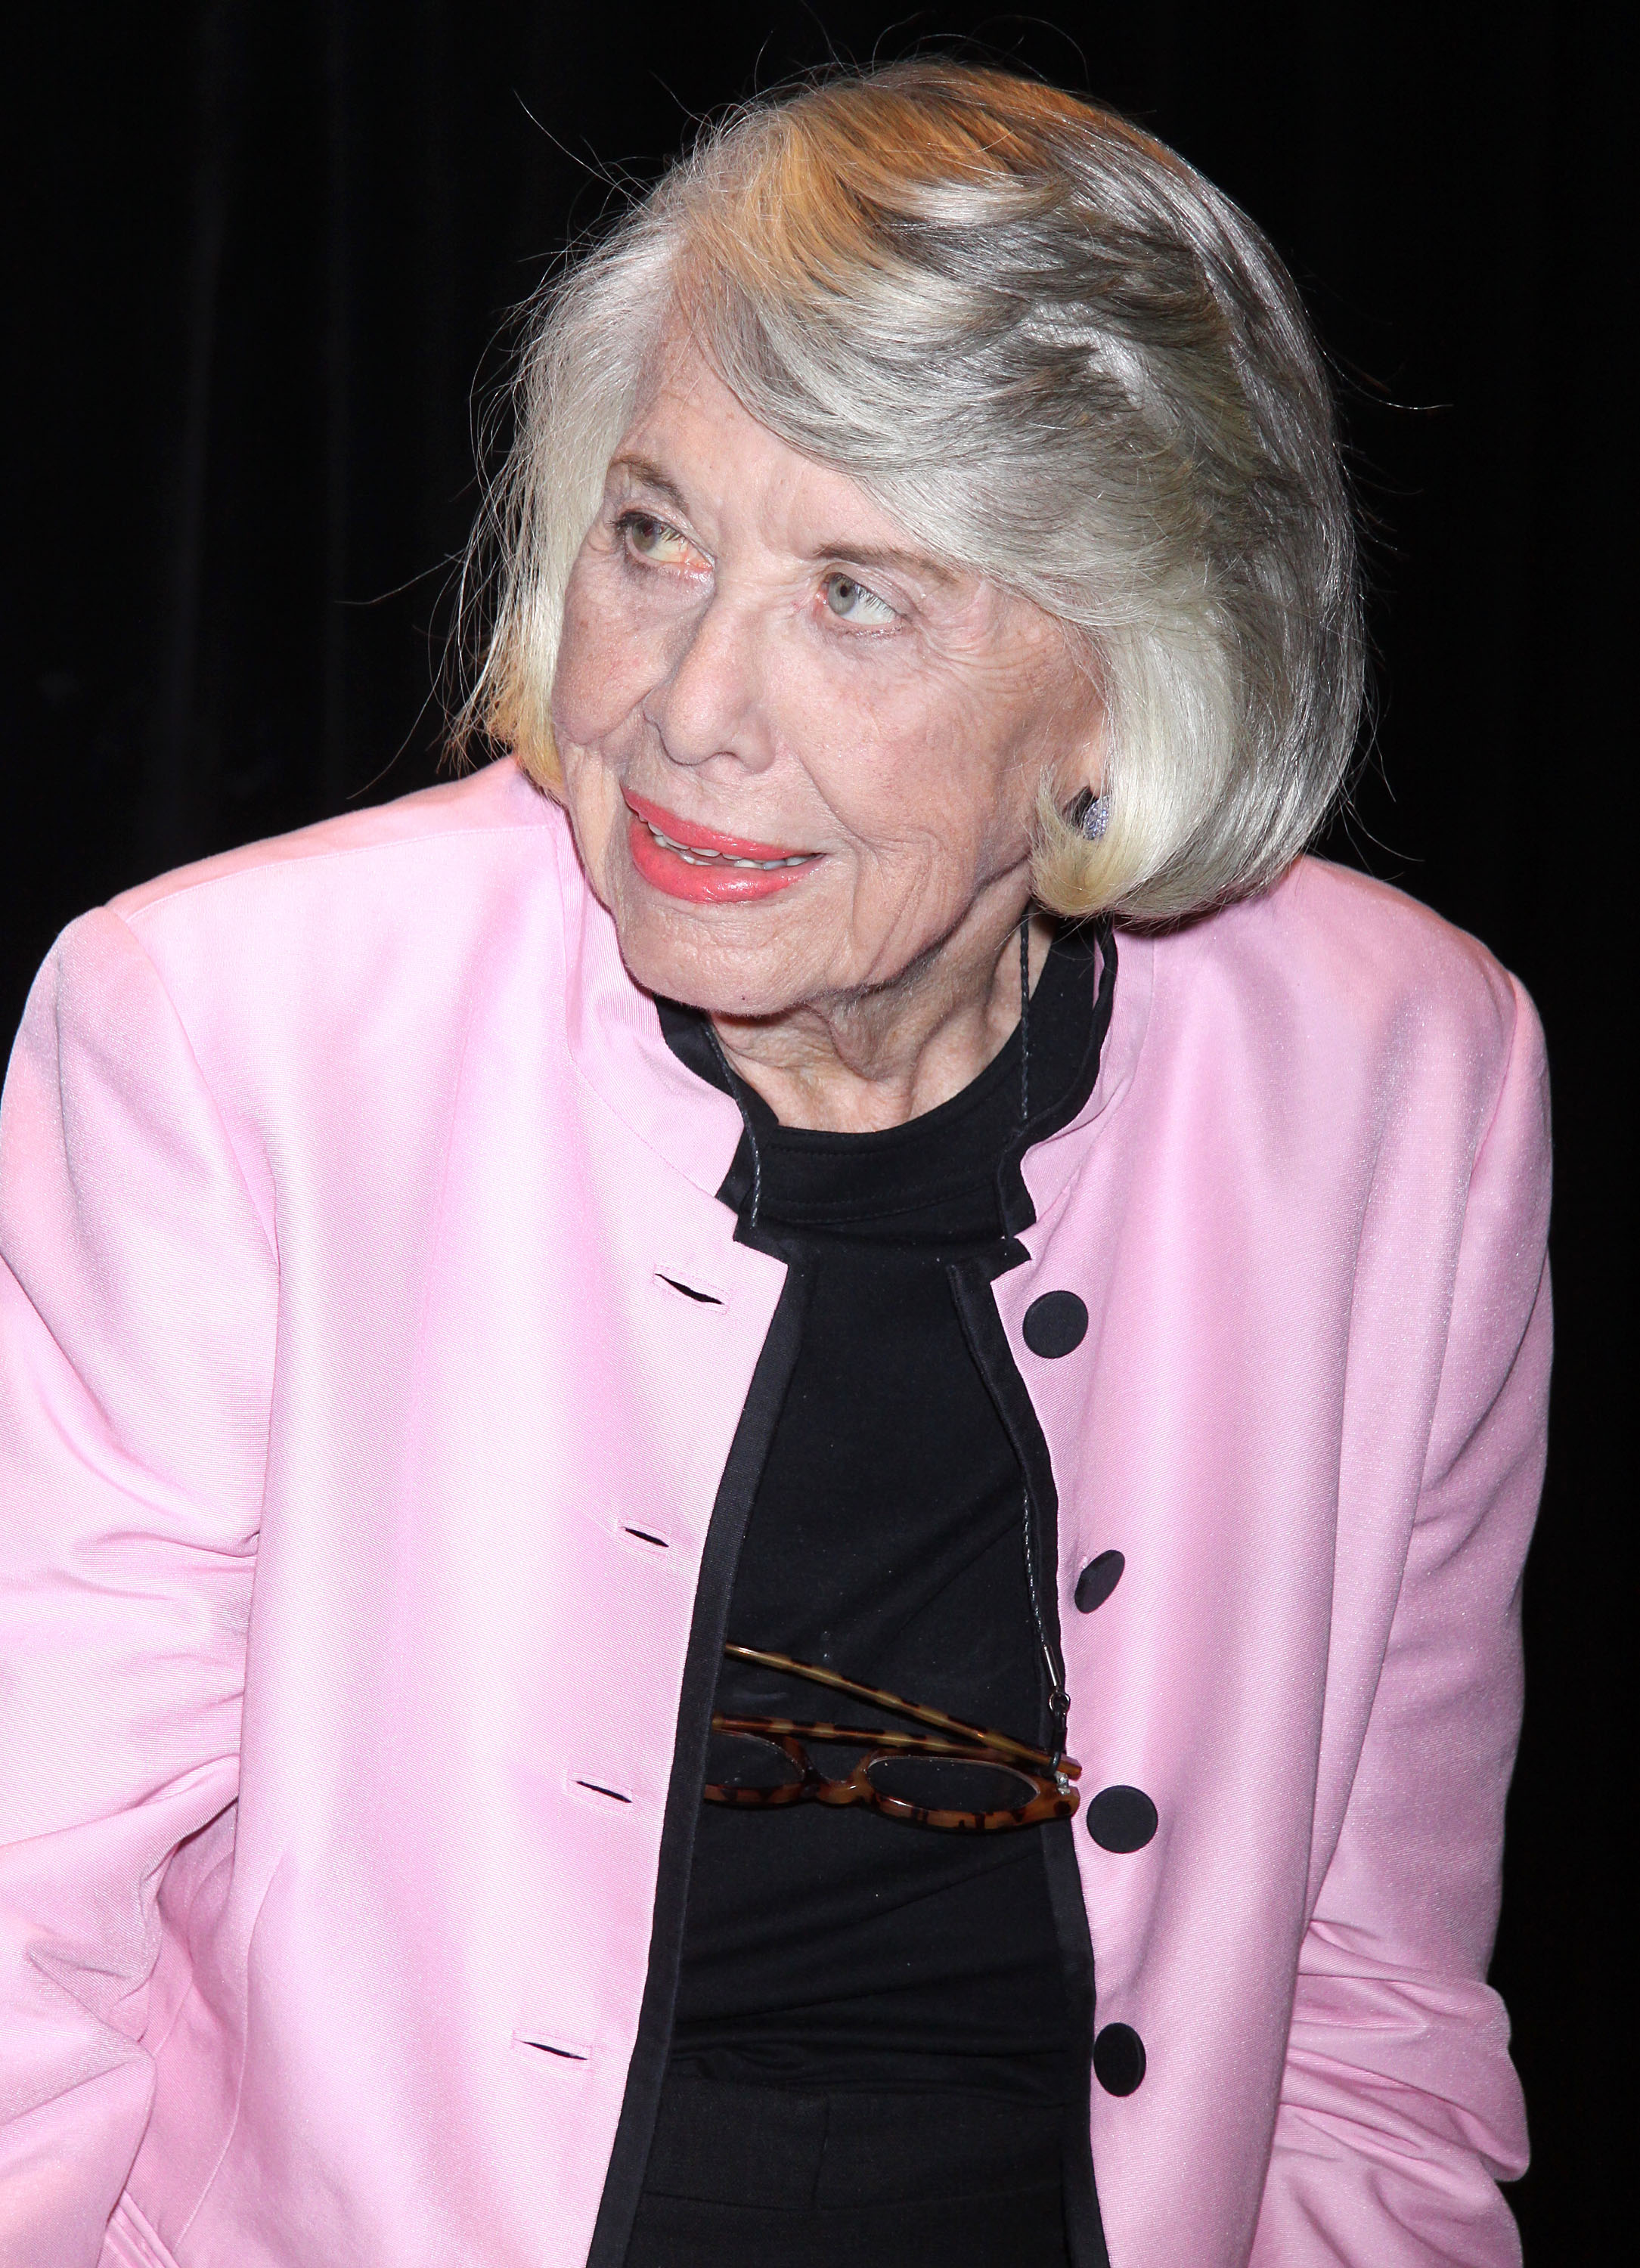 Rosie's Theater Kids 10th Anniversary Gala, held at the Marriott Marquis Hotel.                                    Featuring: Liz Smith                  Where: New York, NY, United States                  When: 26 Sep 2013                  Credit: Joseph Marzullo/WENN.com